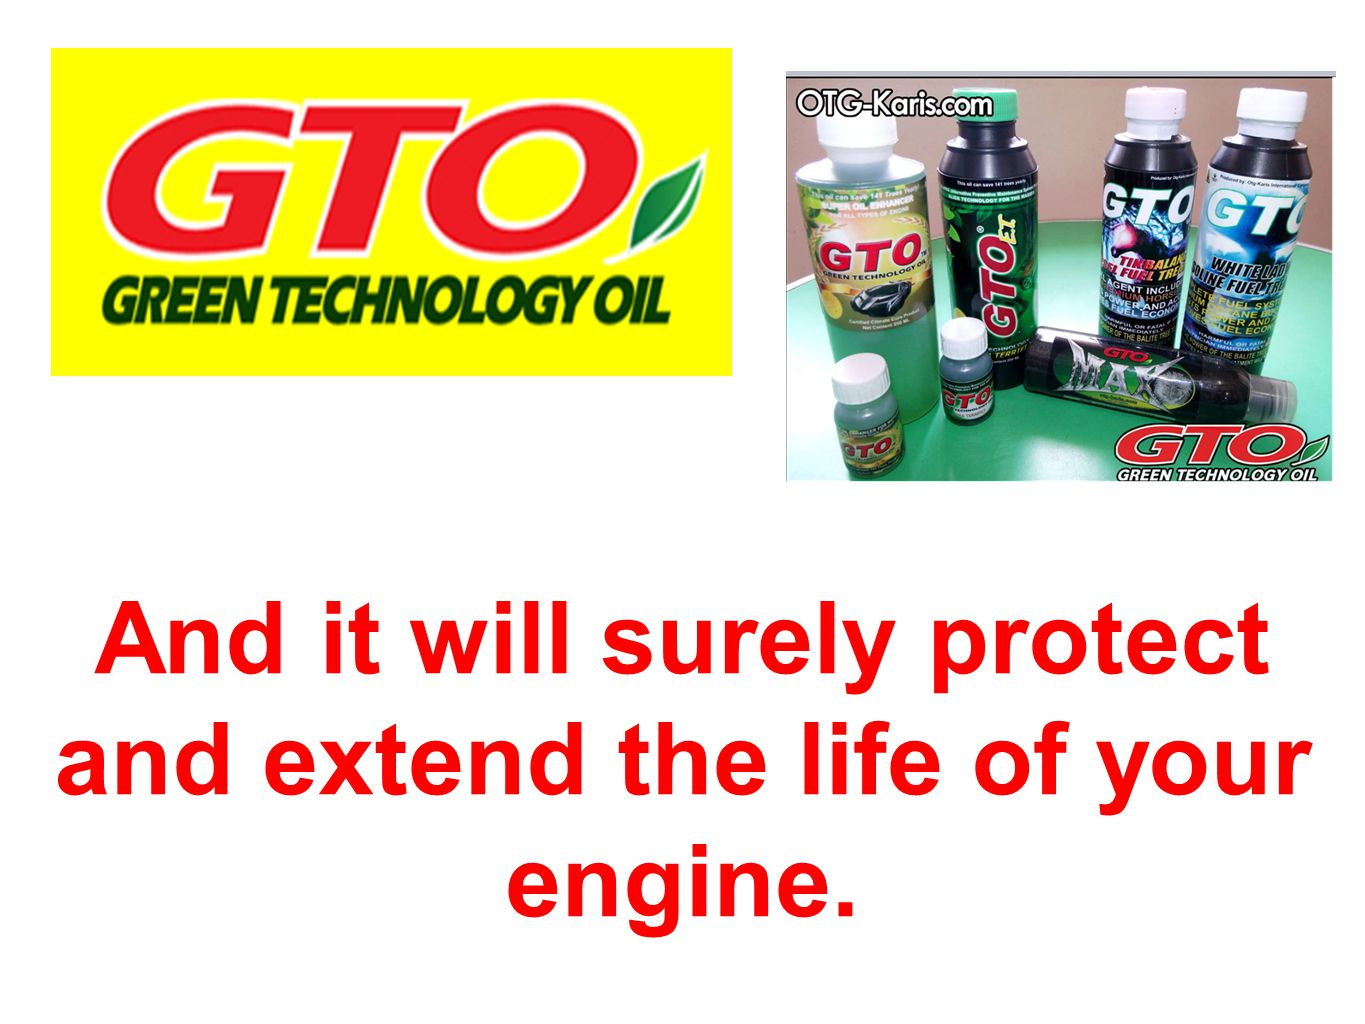 And it will surely protect and extend the life of your engine.